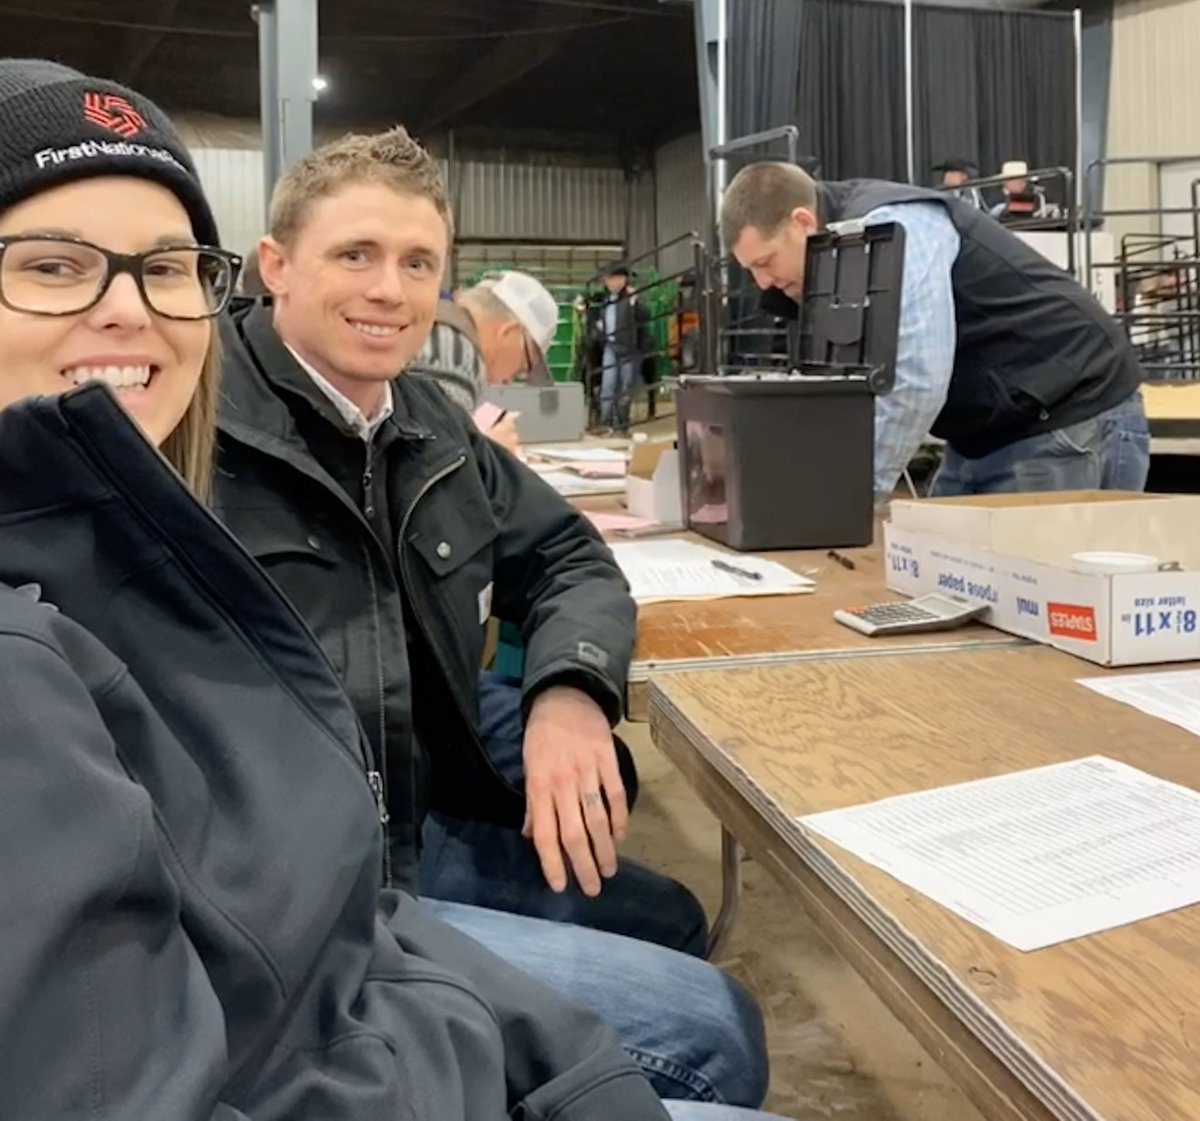 Our Ag team is at the Sioux Falls Livestock show today. The team kept up with tradition by clerking the Angus sale, something we've done since the beginning of the show 67 years ago!